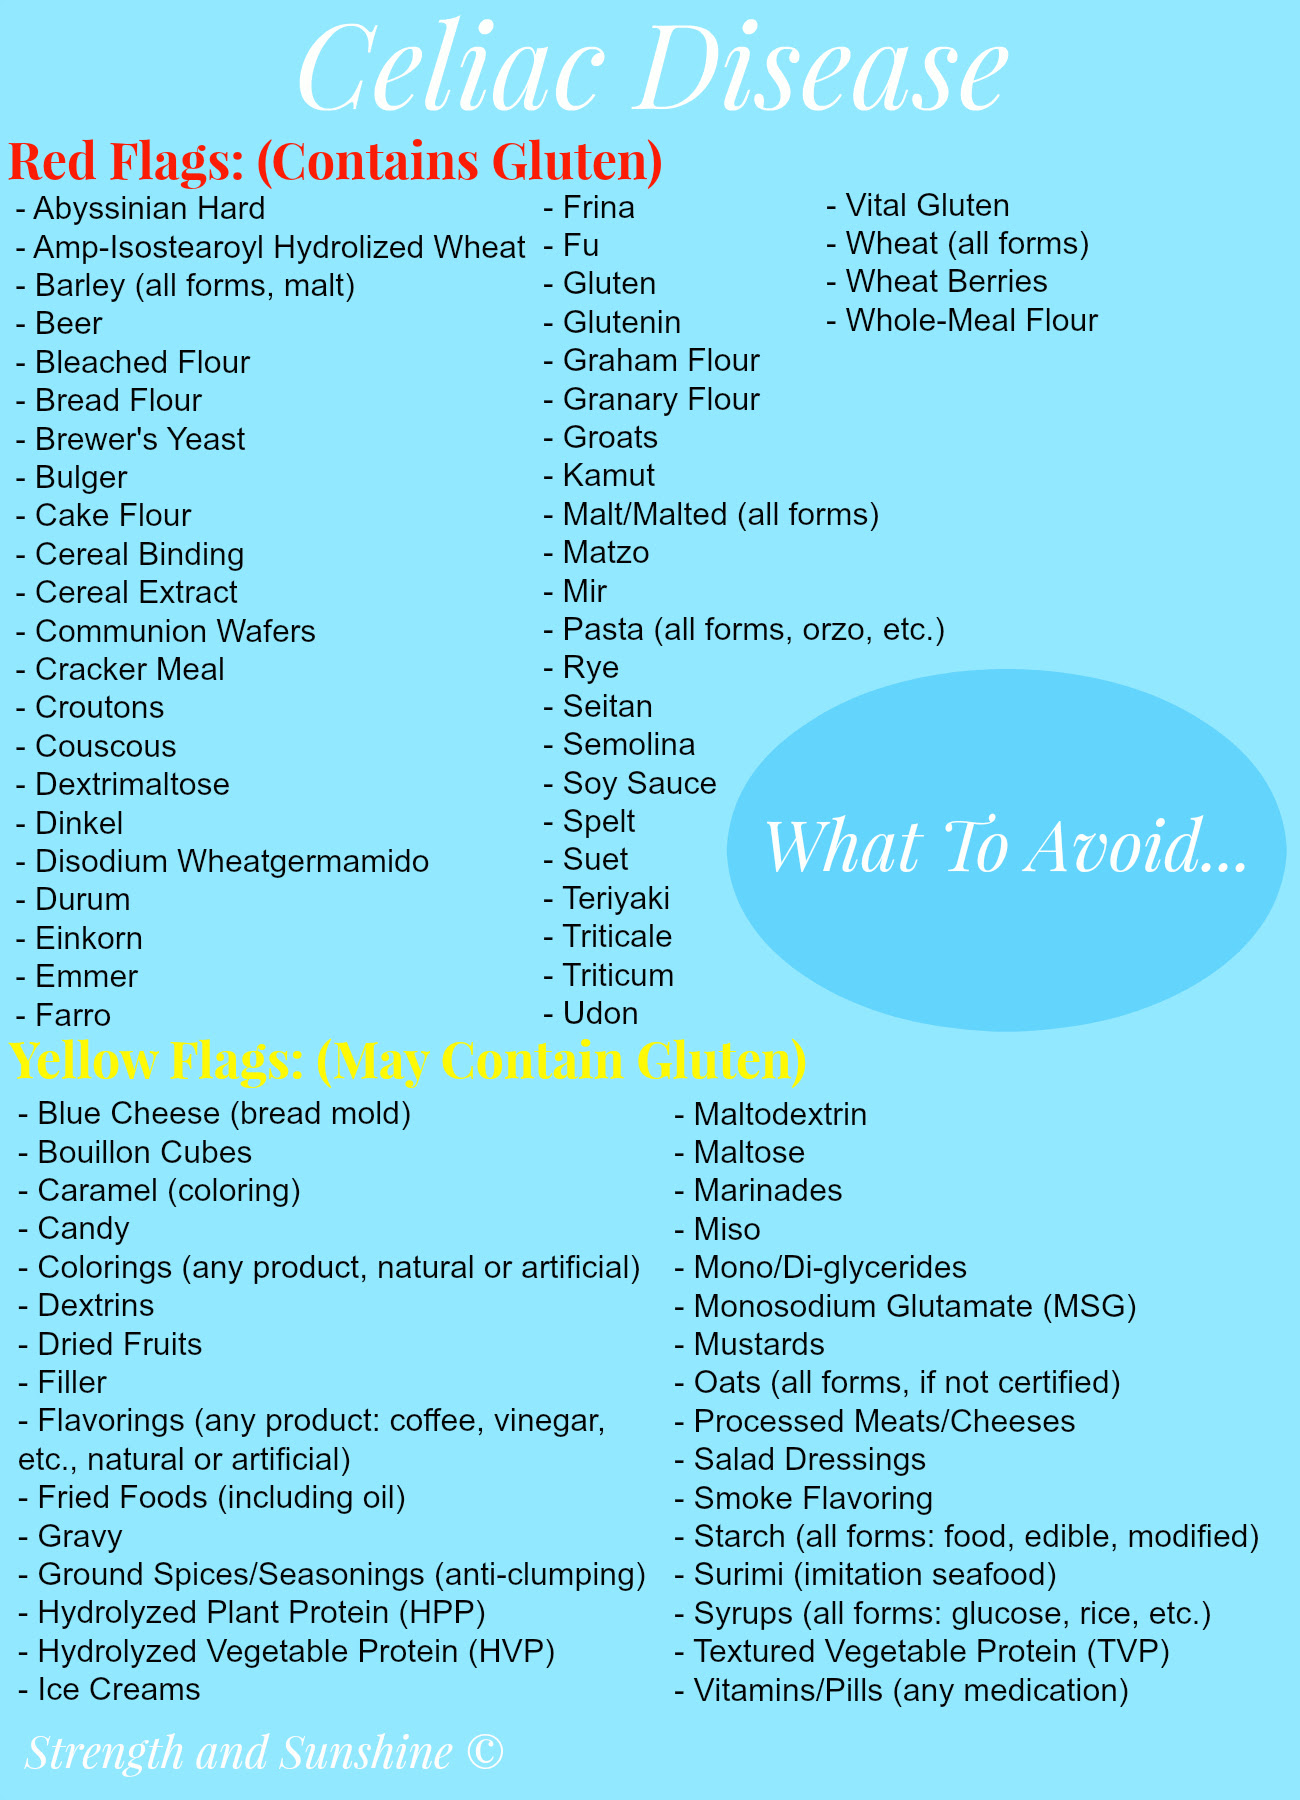 What To Avoid With Celiac Disease - Strength and Sunshine